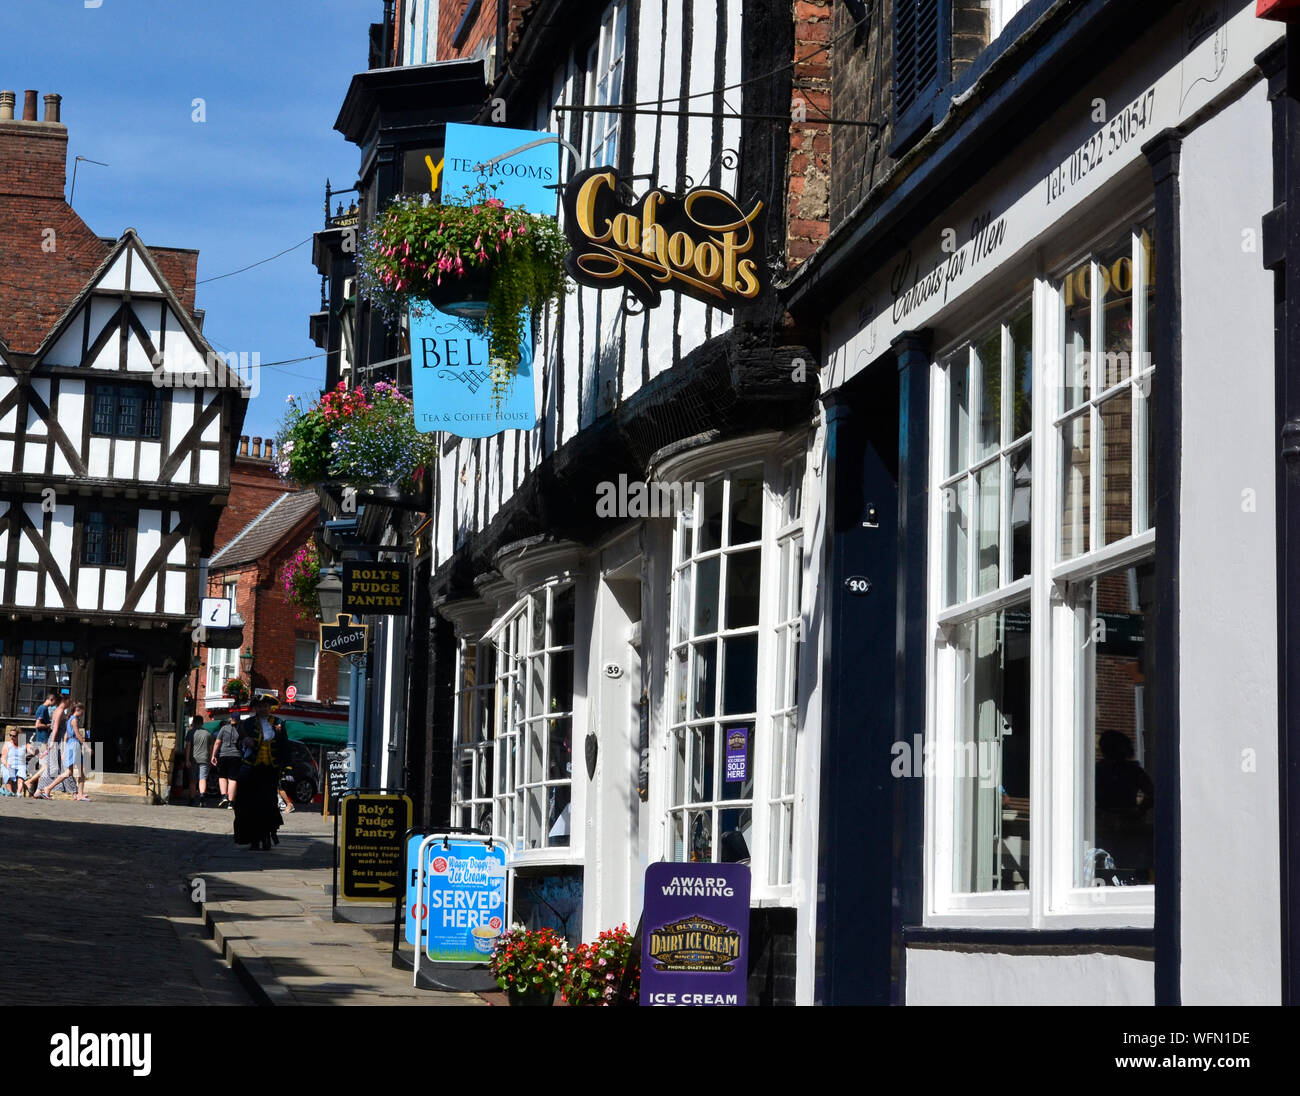 Street scene on Steep Hill, Lincoln, Lincolnshire, UK. City centre. Stock Photo